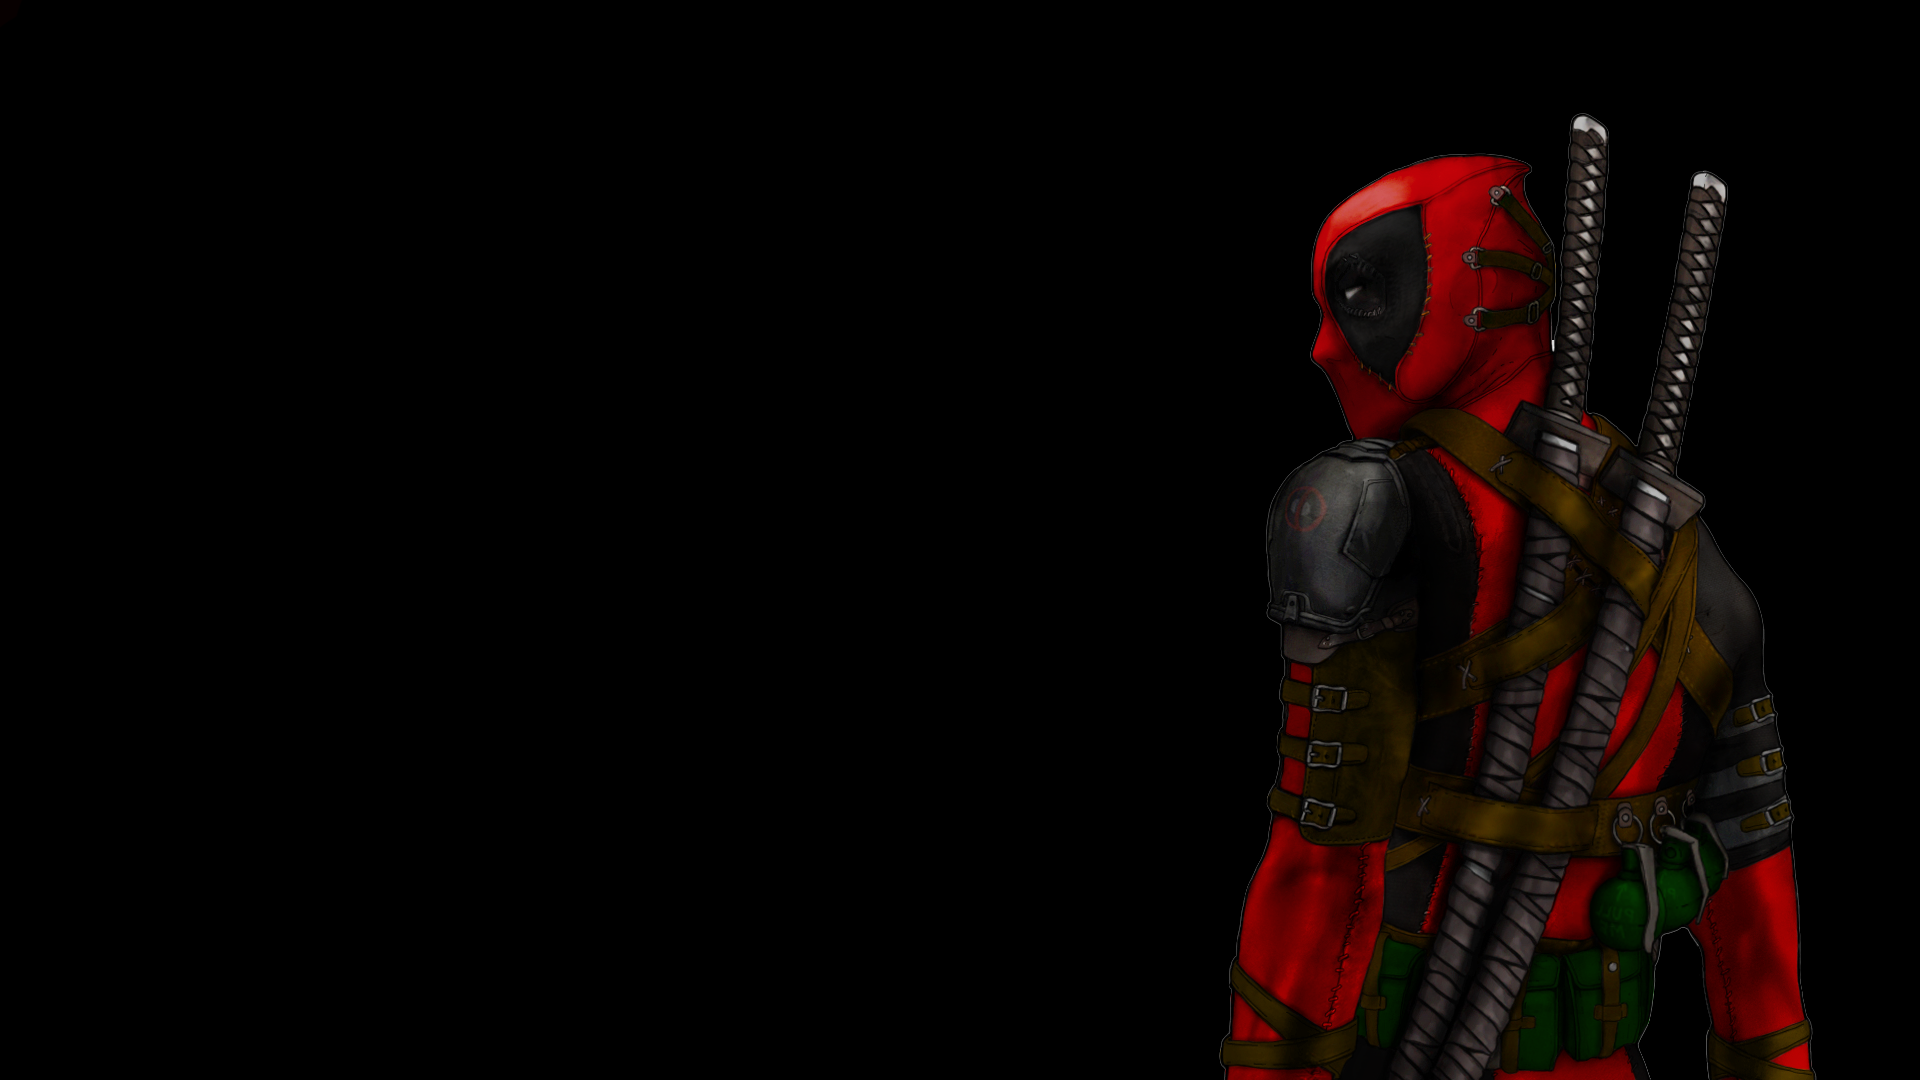 Deadpool Wallpaper 1920x1080 Of Deadpool Wallpaper Movie Wallpapersafari